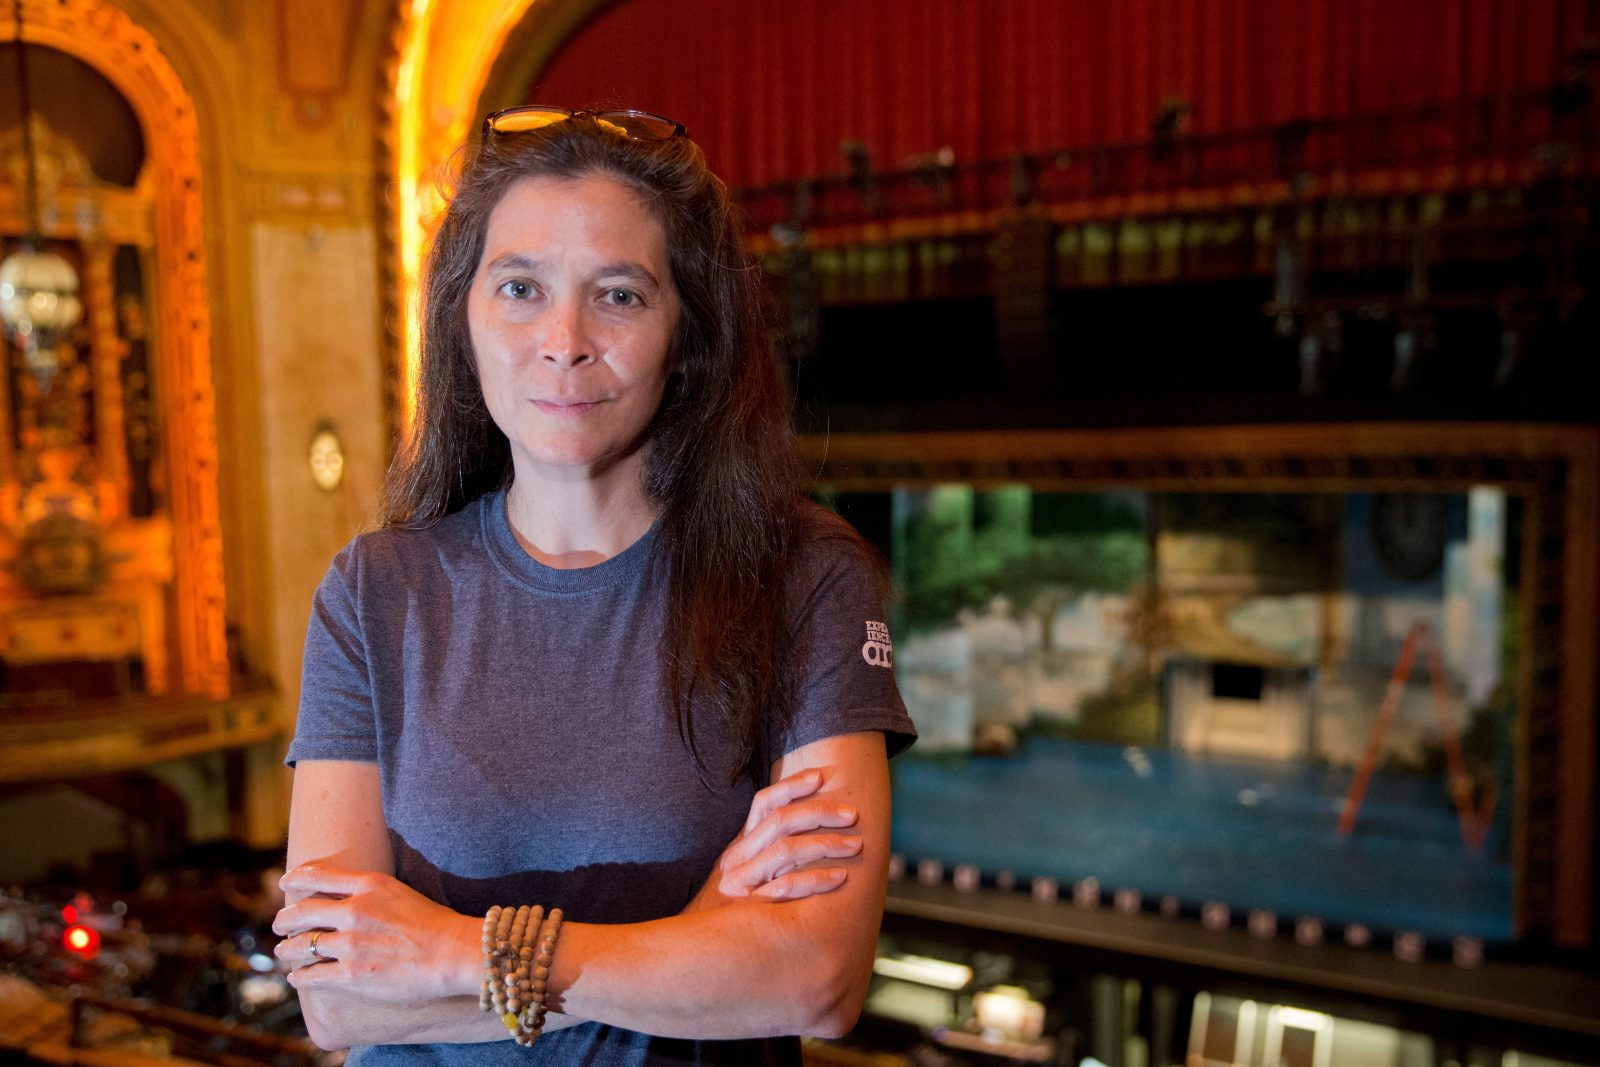 'Finding Neverland' director Diane Paulus at work in Shea's Performing Arts Center  in Buffalo, N.Y. on Thursday Sept. 29, 2016.   (John Hickey/Buffalo News)